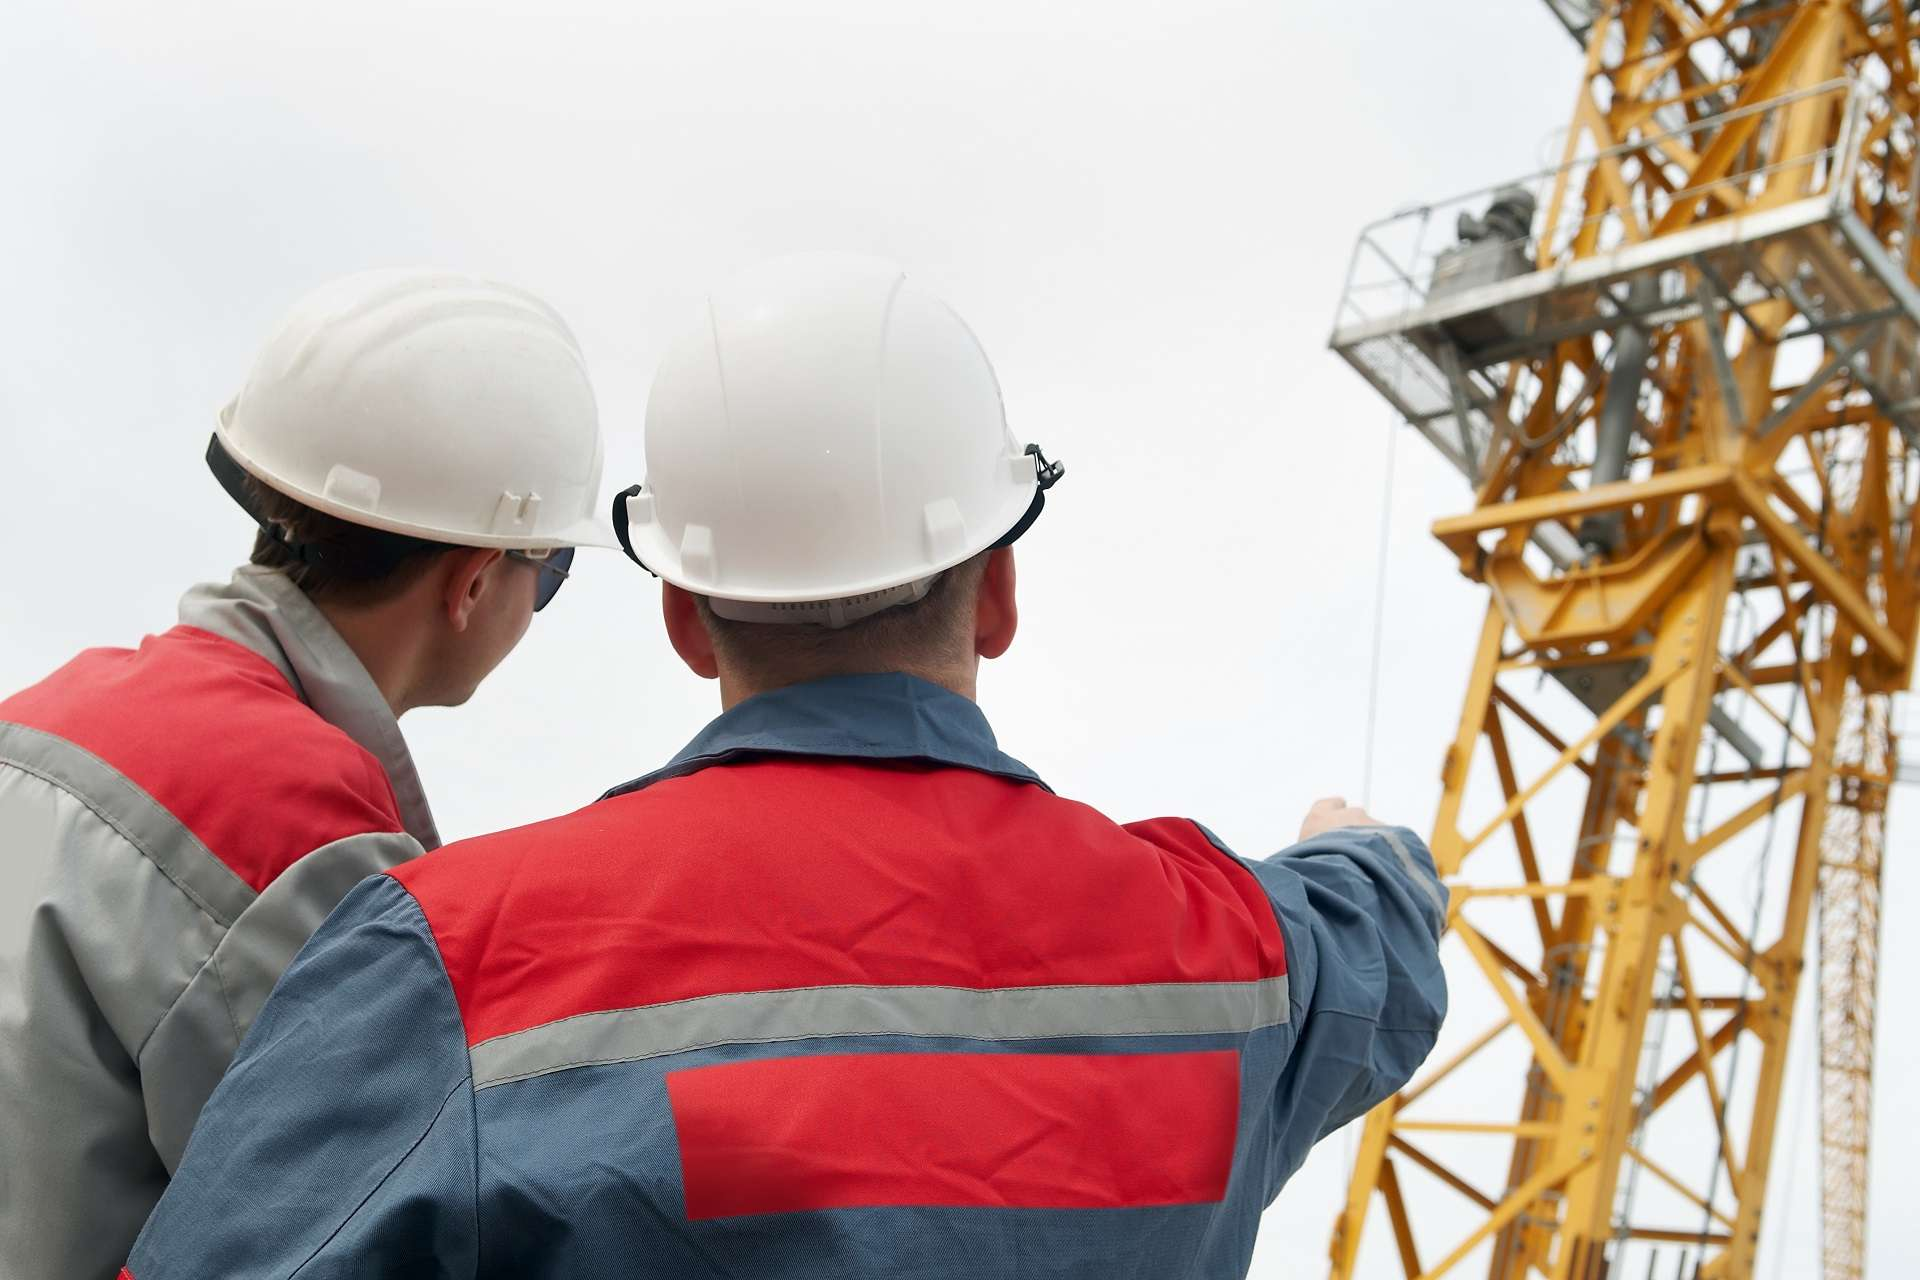 Longshore and Harbor Workers' Compensation Act